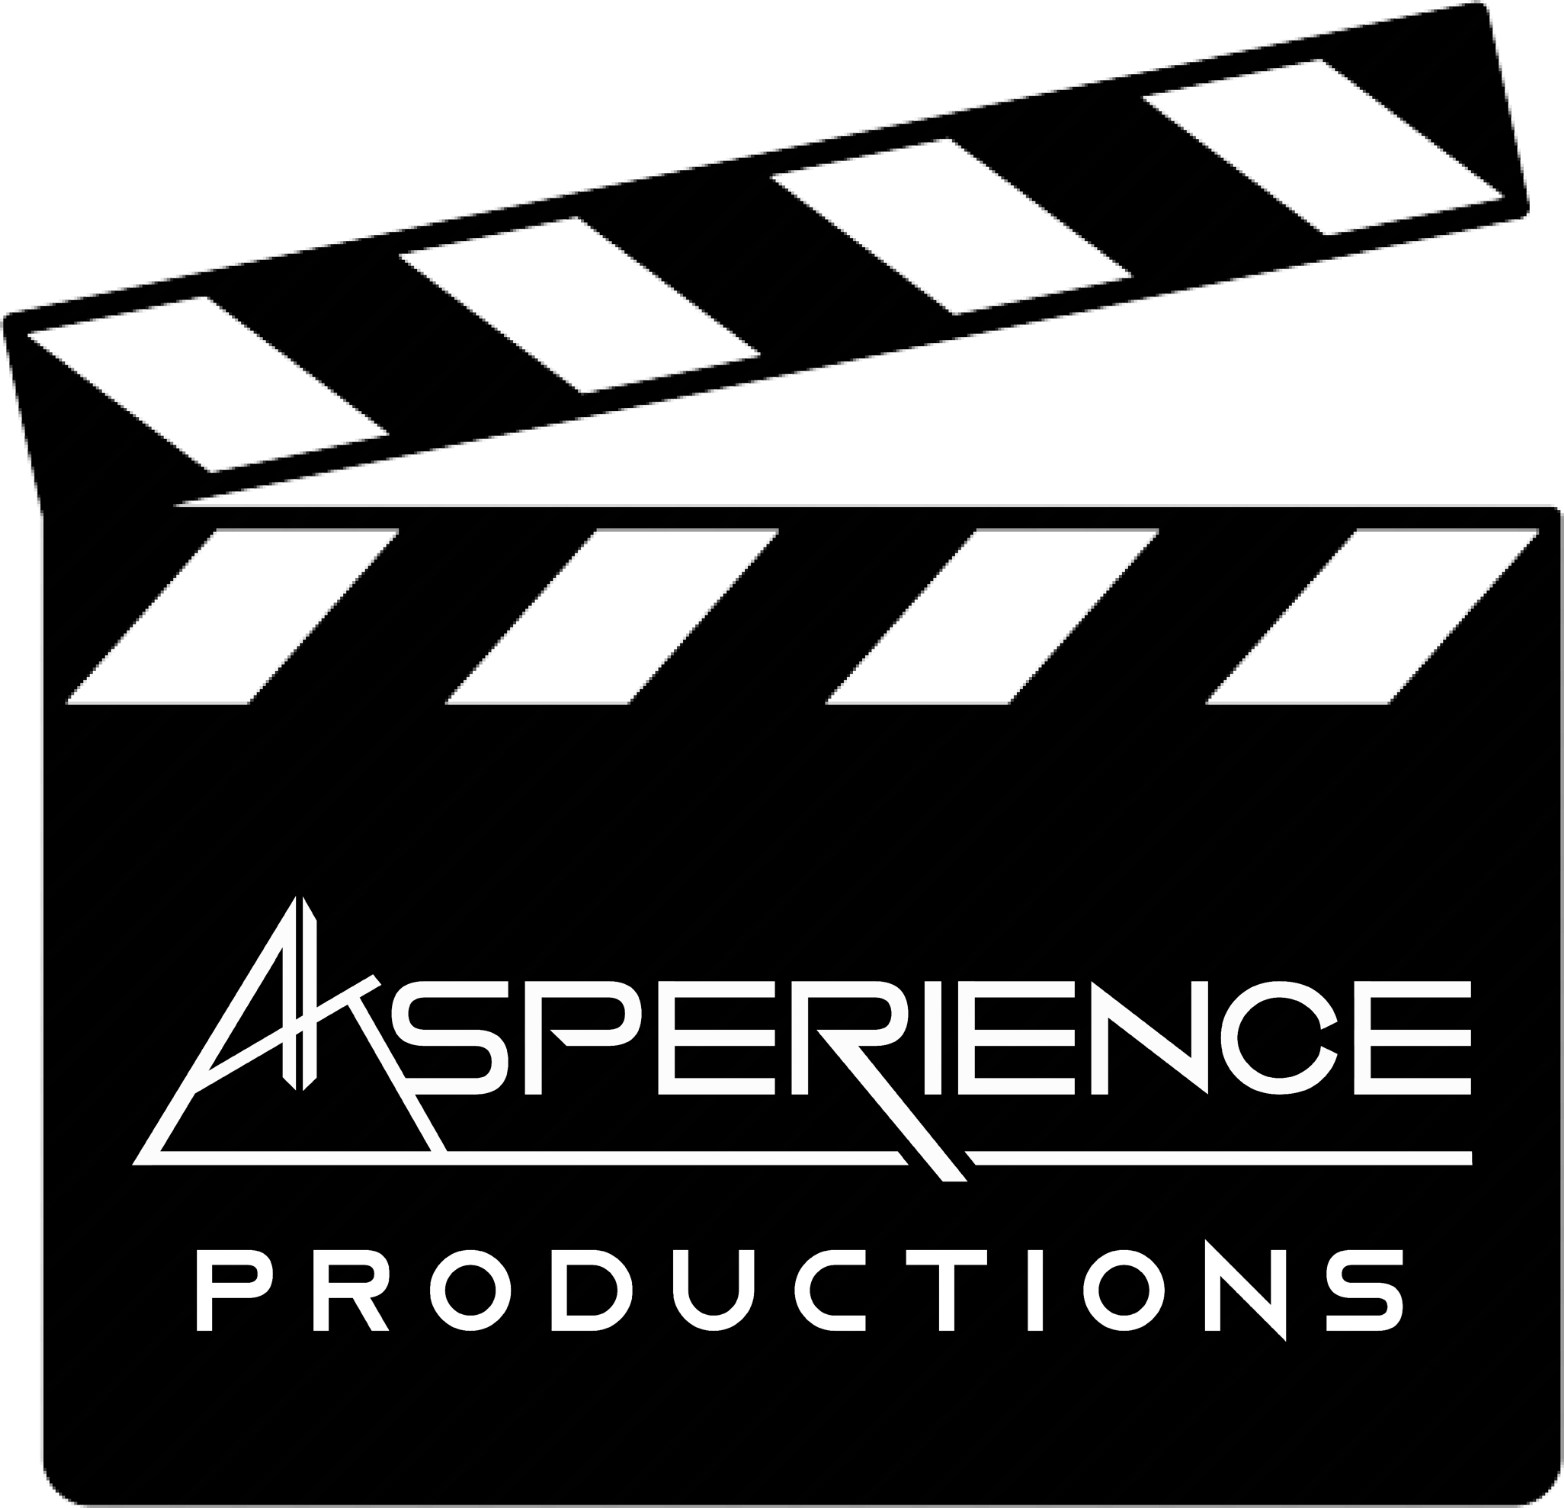 Aksperience Productions